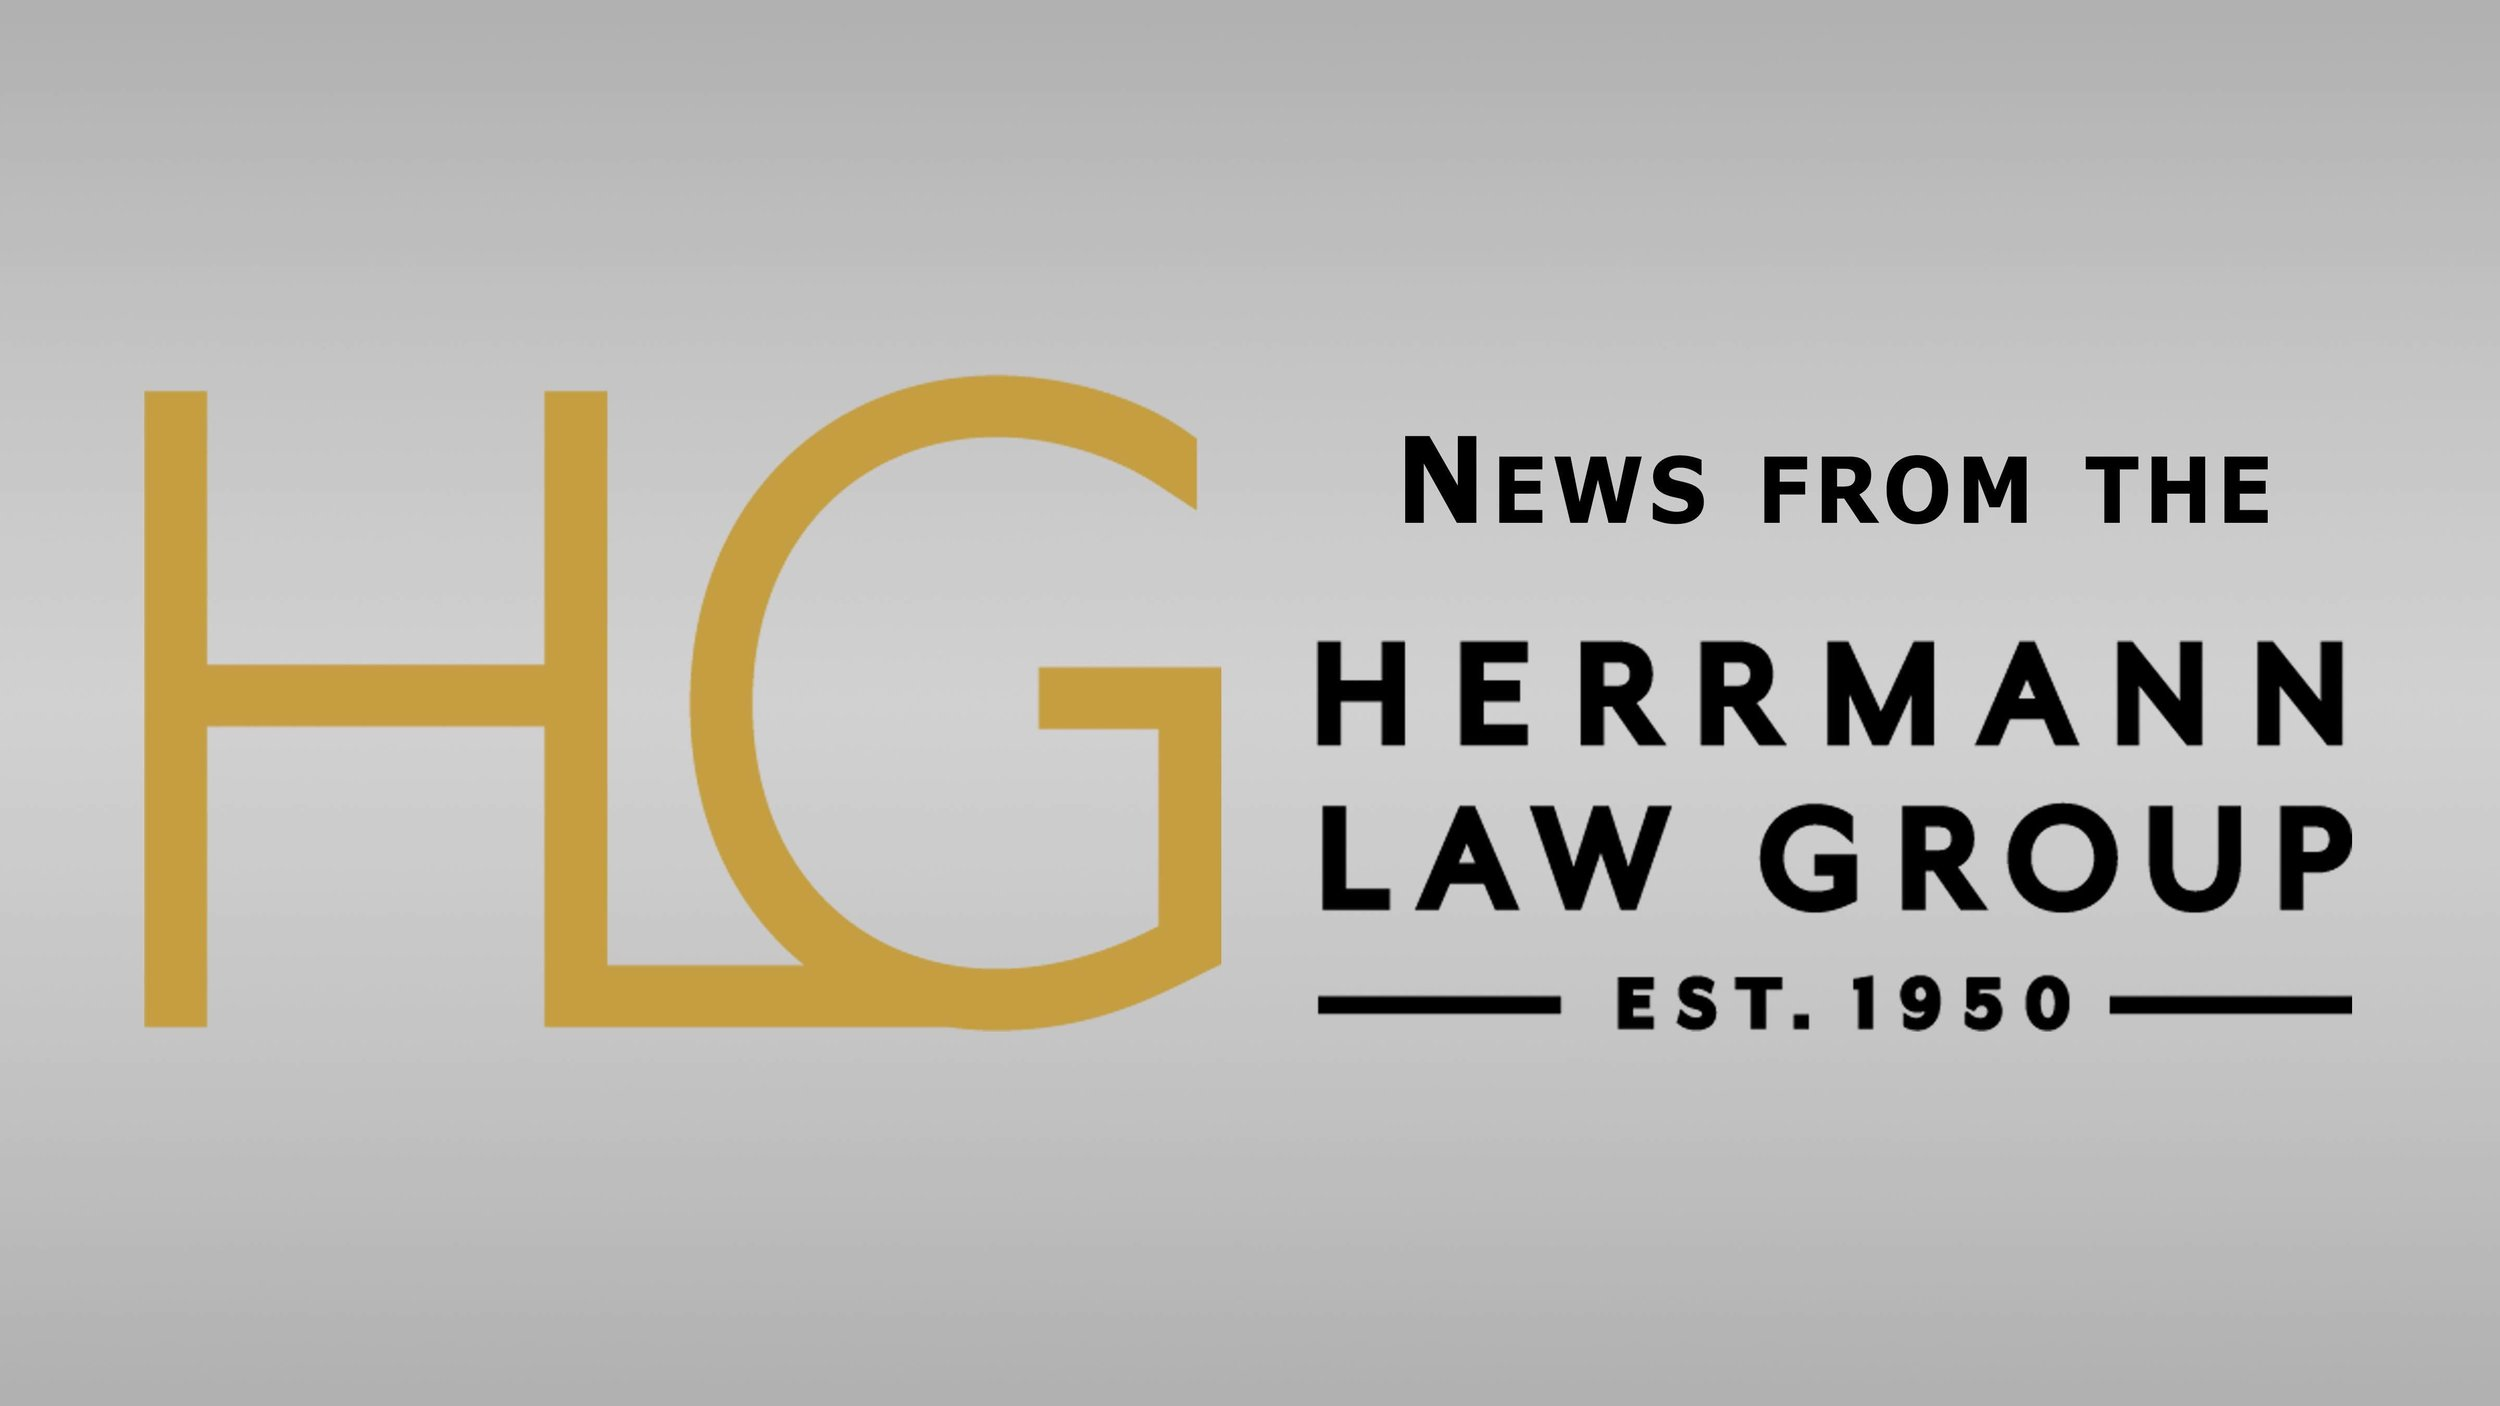 herrmann-law-group-breaking-news.jpg